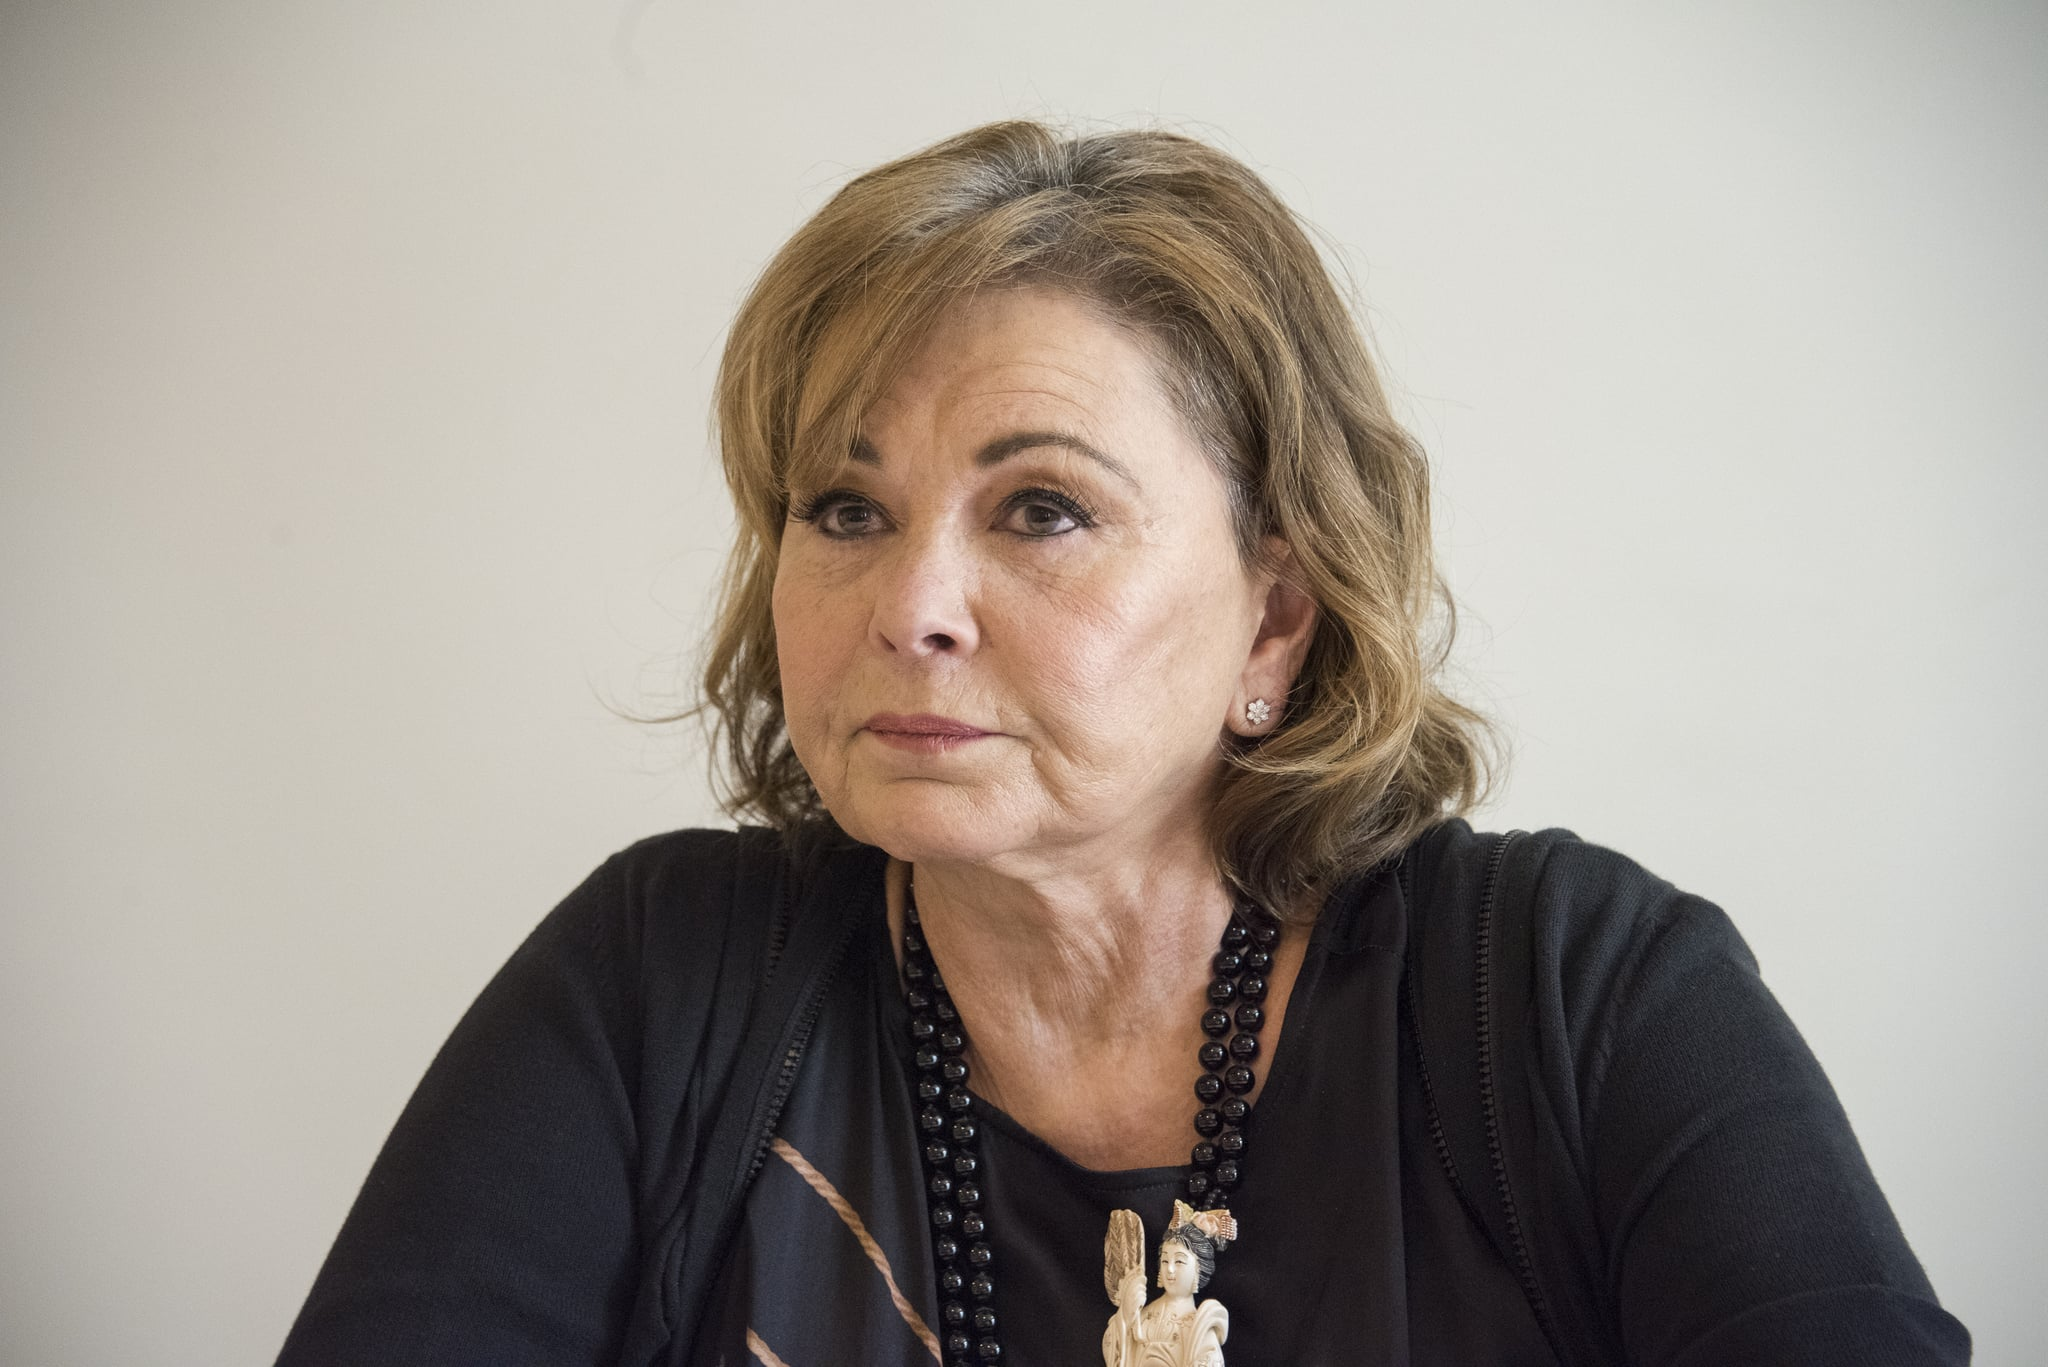 BEVERLY HILLS, CA - MARCH 23:  Roseanne Barr at the